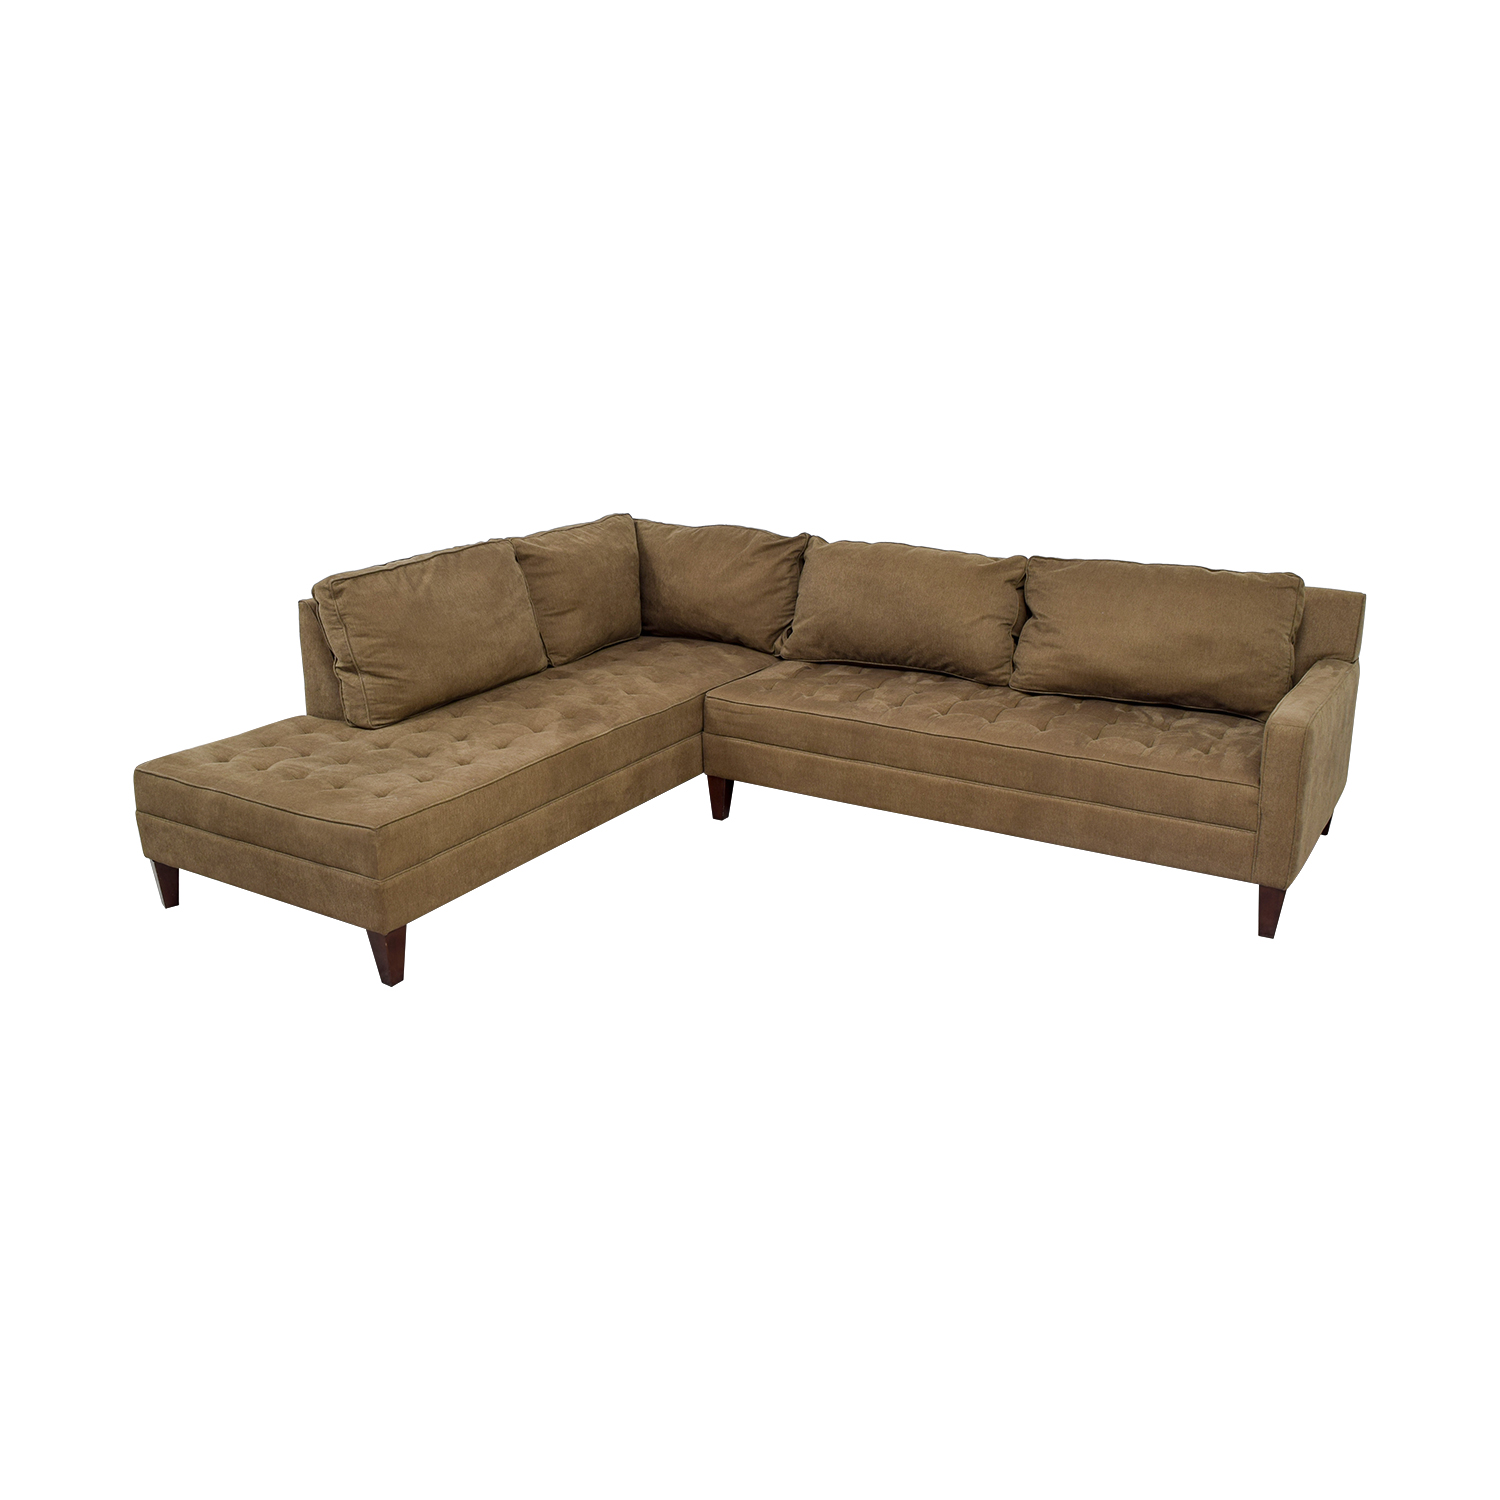 74 Off Z Gallery Z Gallery Brown Tufted Chaise L Shaped